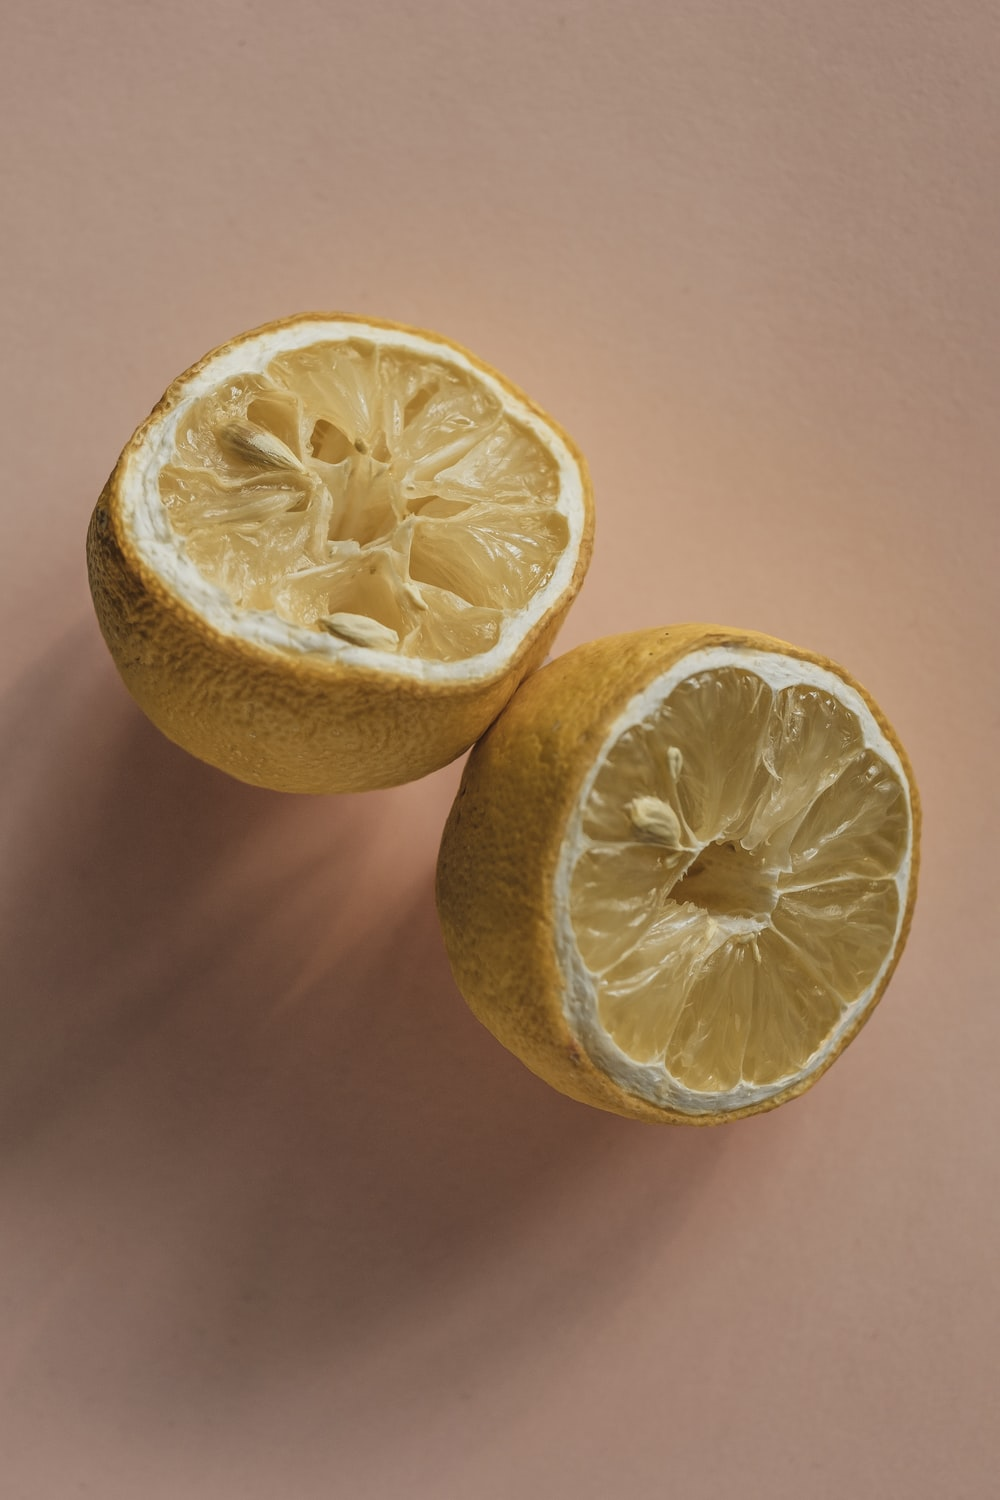 one sliced lemon